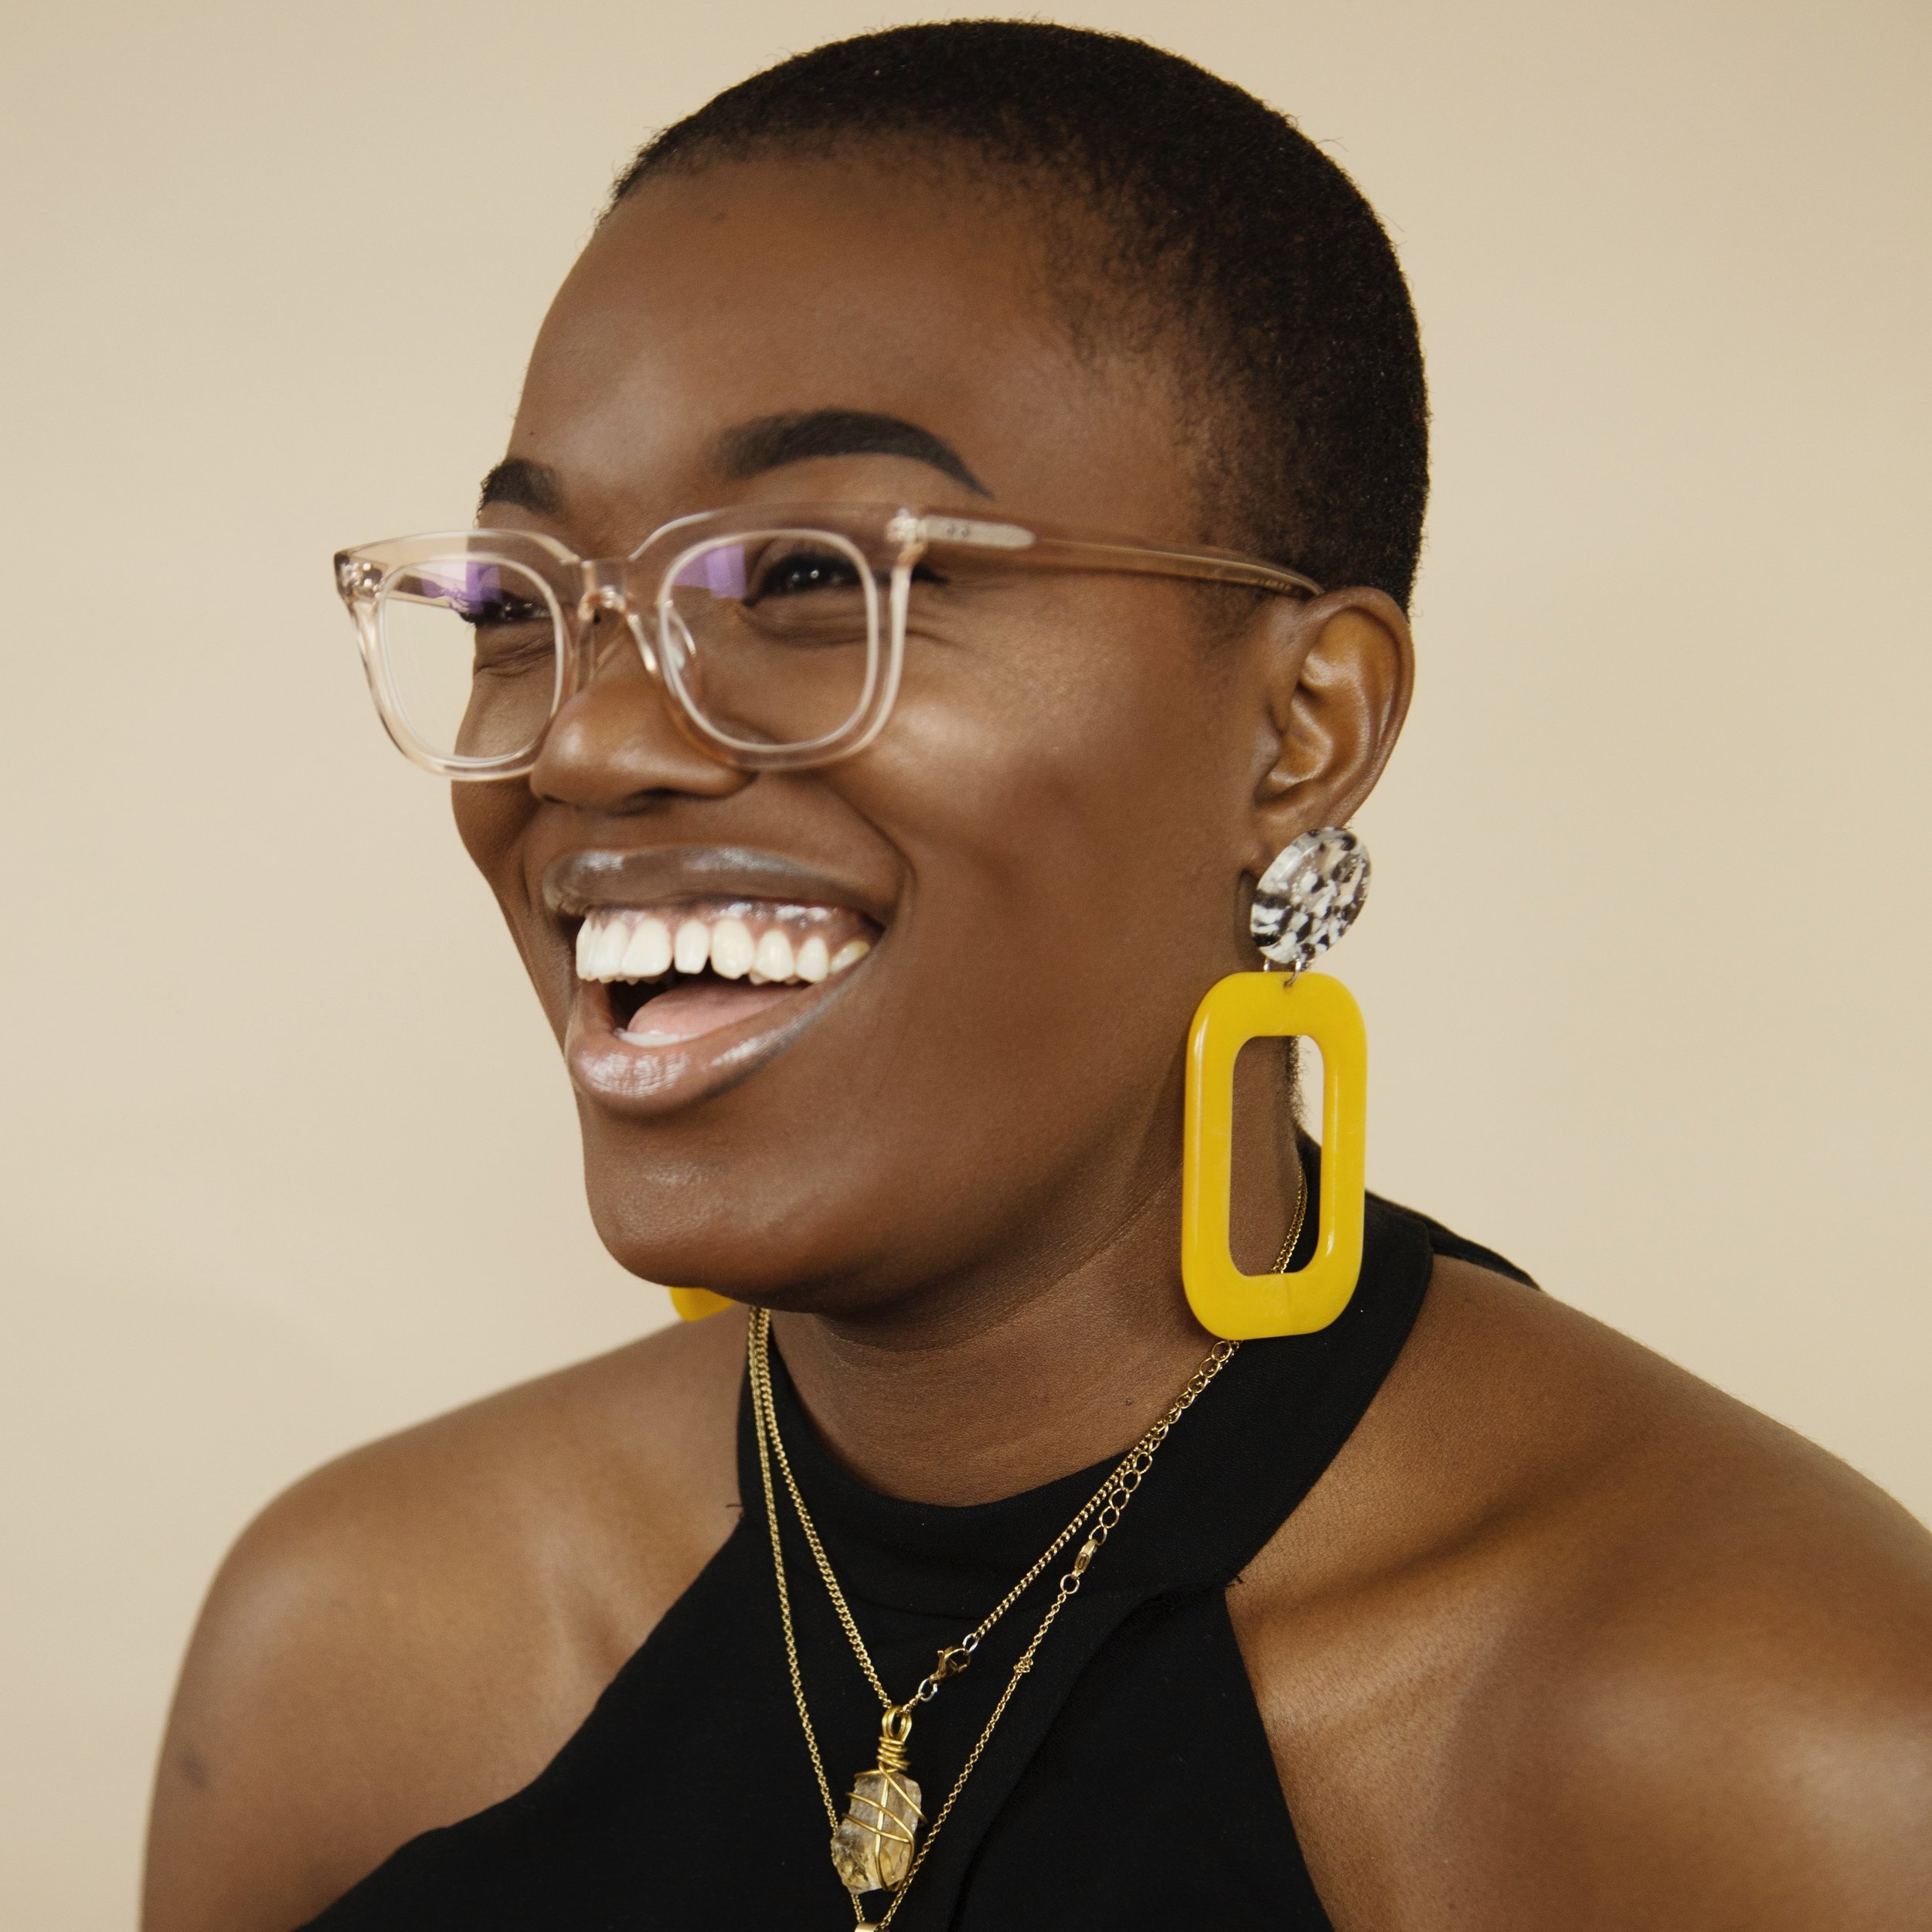 Nicole Crentsil - Nicole Crentsil is a London-based Ghanaian born curator, cultural producer, public speaker and creative consultant. She's the founder of Unmasked Women, a TEDx speaker and host.Twitter: @nkrystalInstagram: @nkrystal_